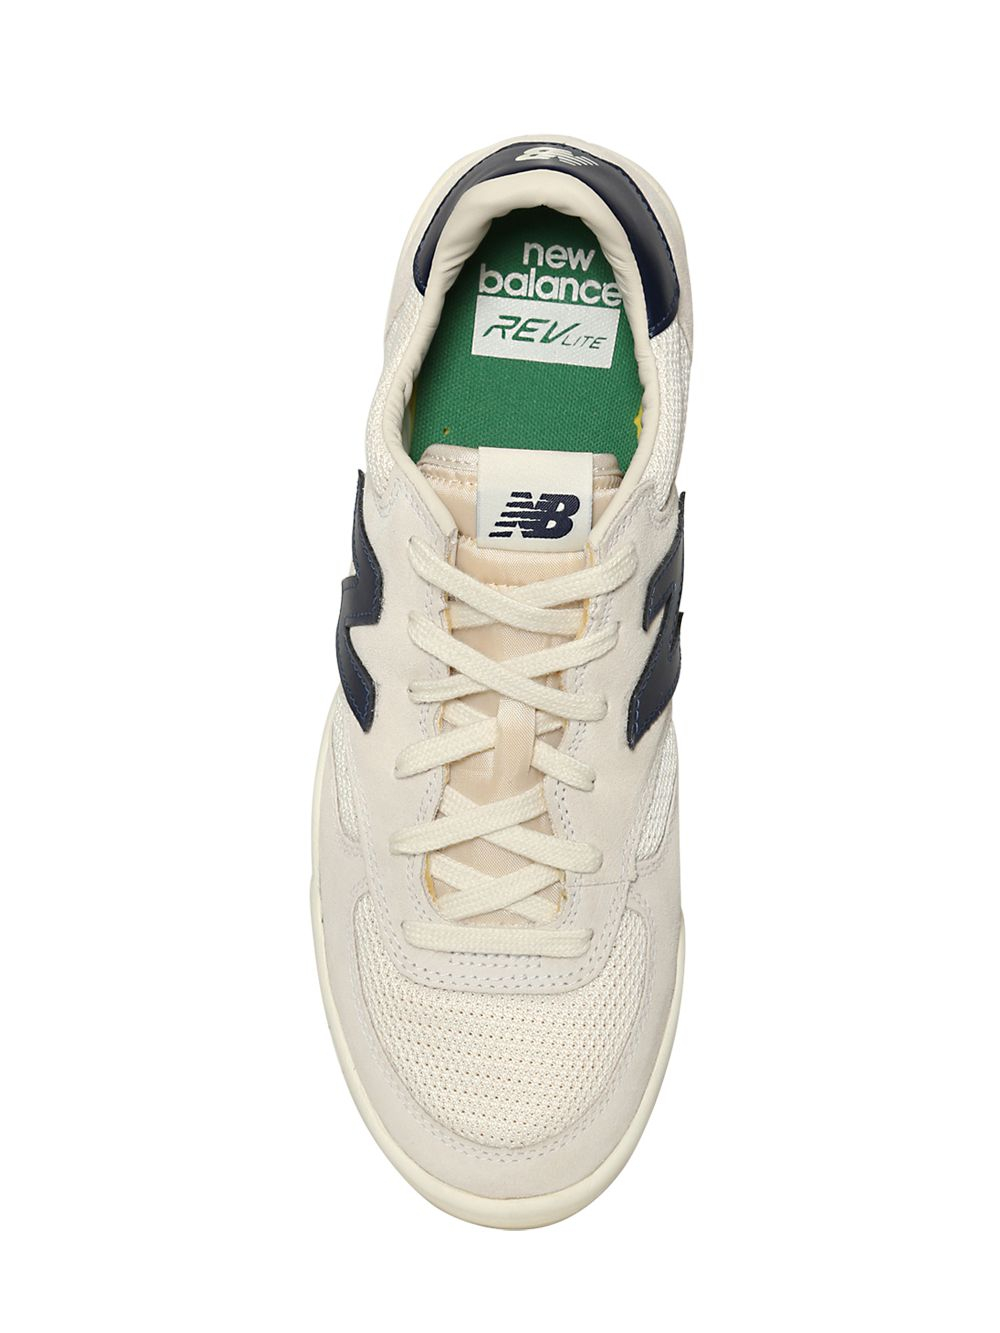 New Balance 300 Suede & Mesh Tennis Sneakers in White/Navy (White ...